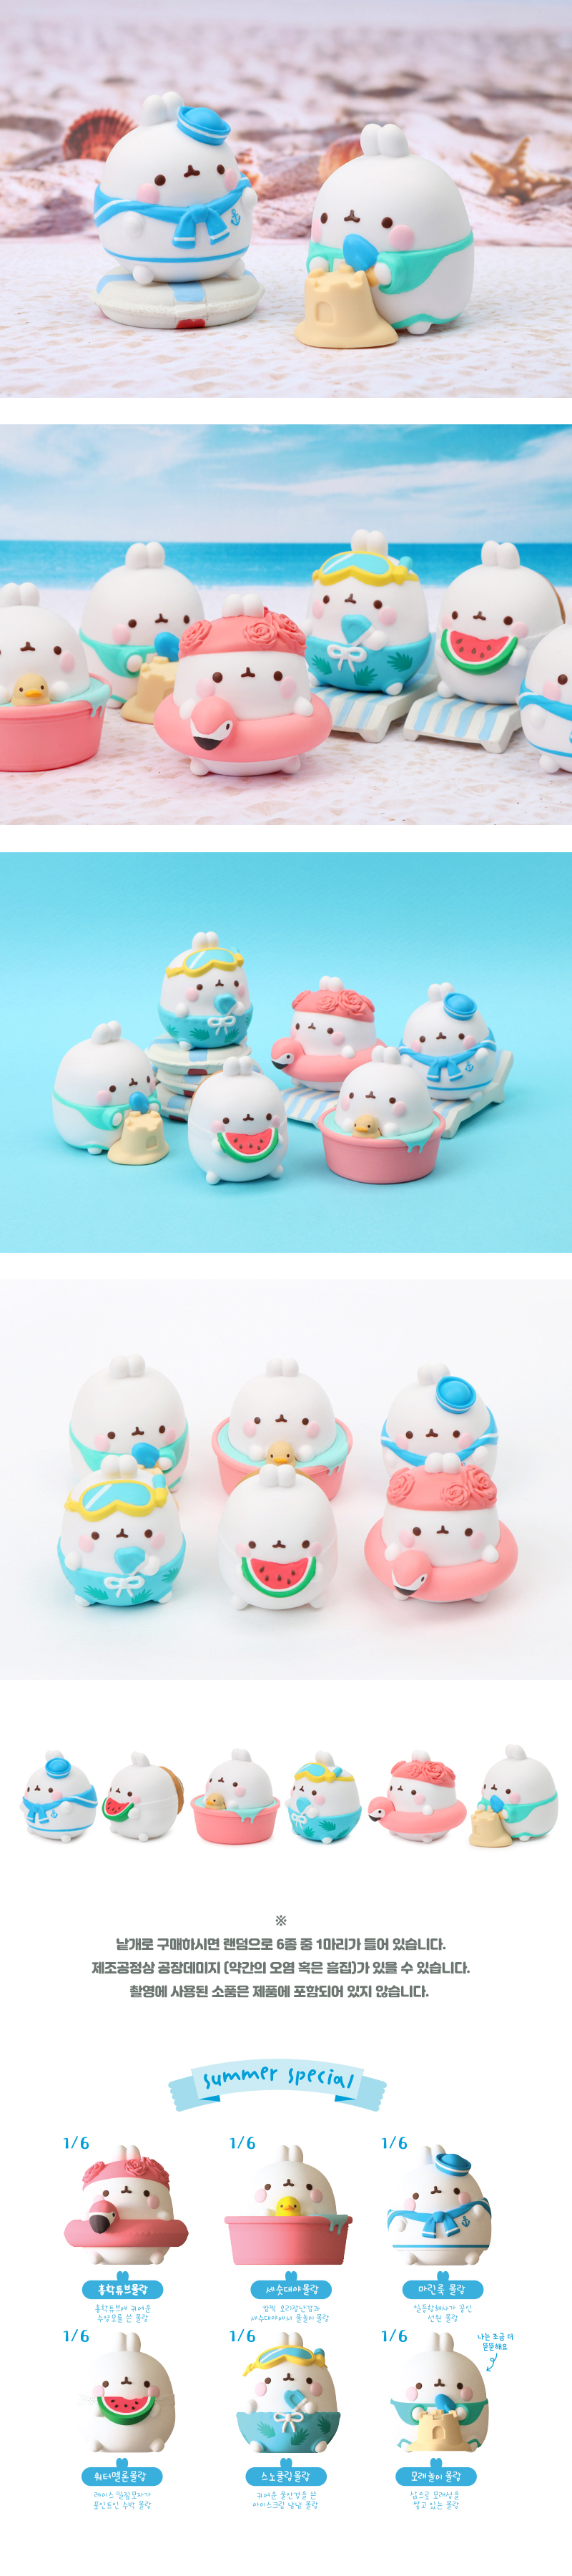 molang_figure_summer_special_03.jpg